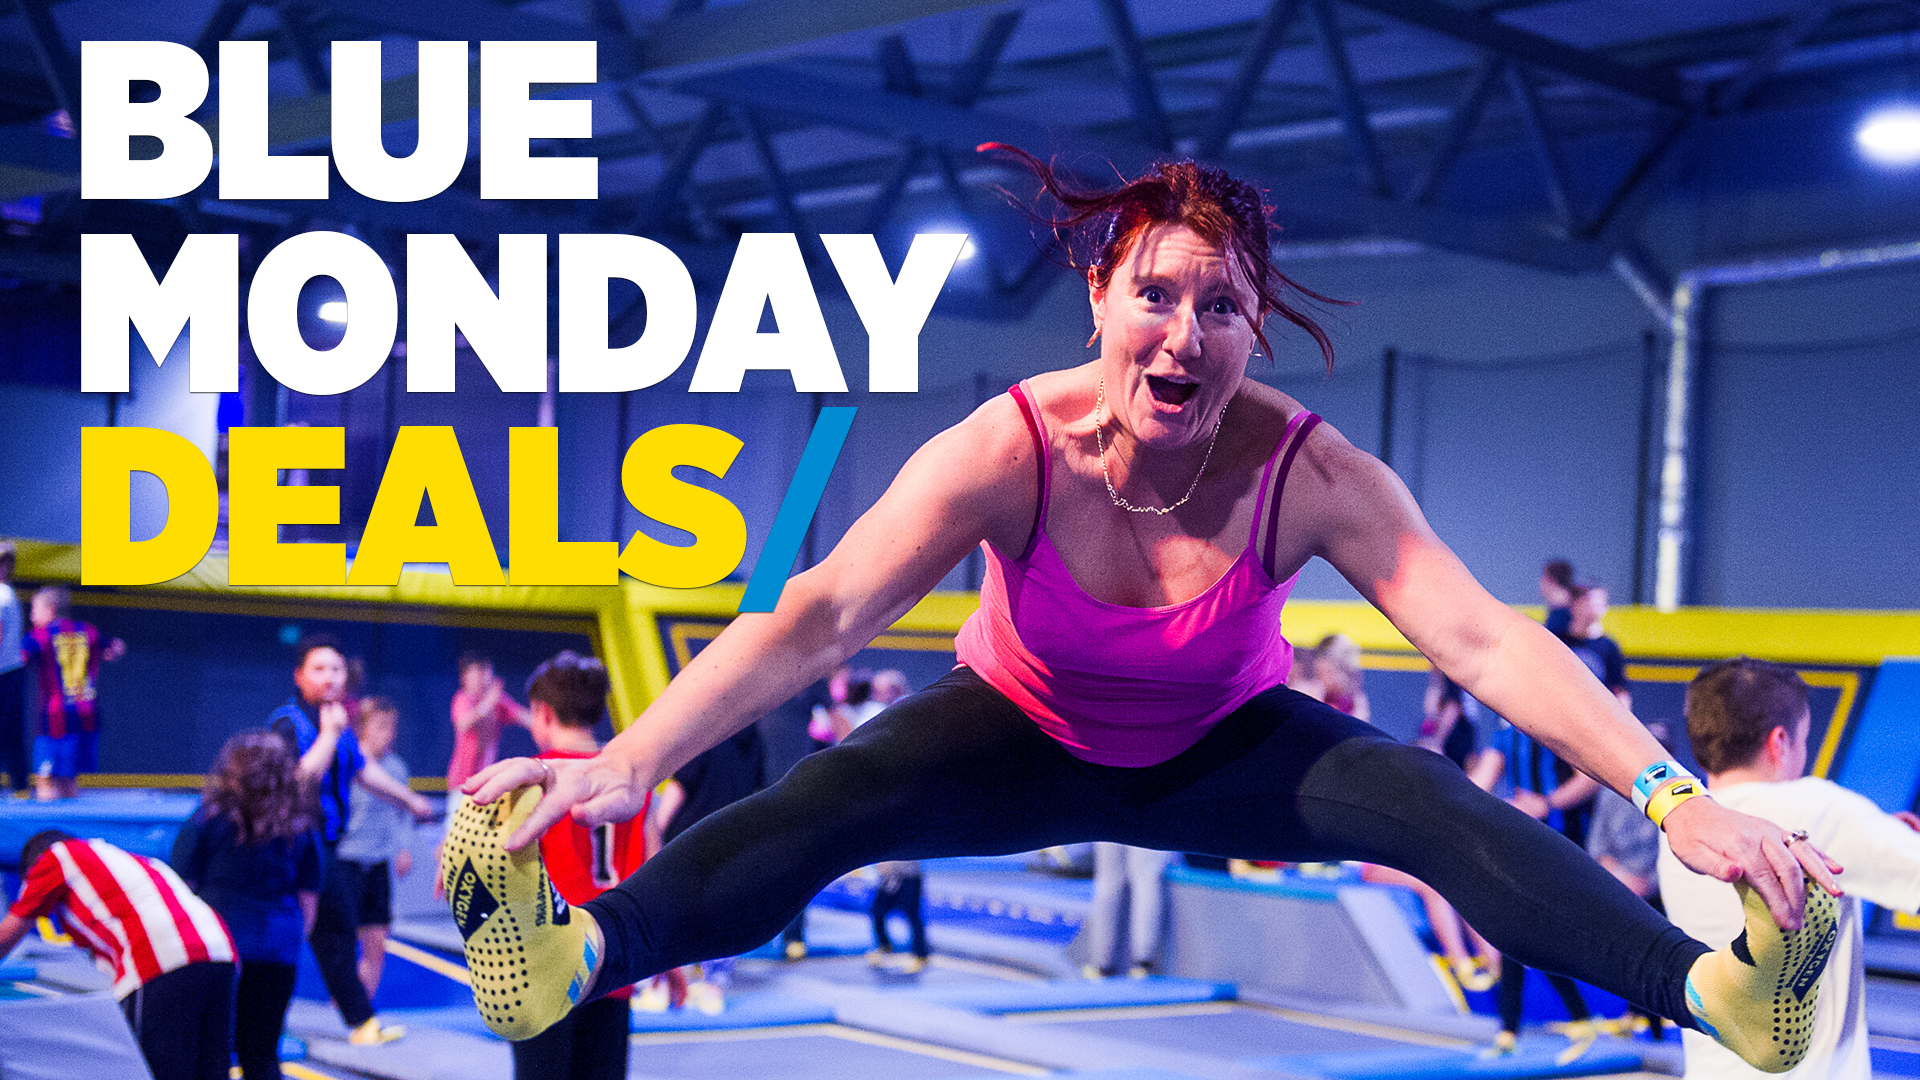 BLUE Monday is fast approaching and Brits are preparing for the most depressing day of the year. As doom and gloom is believed to be descending on the January 16, here are some fun deals and.